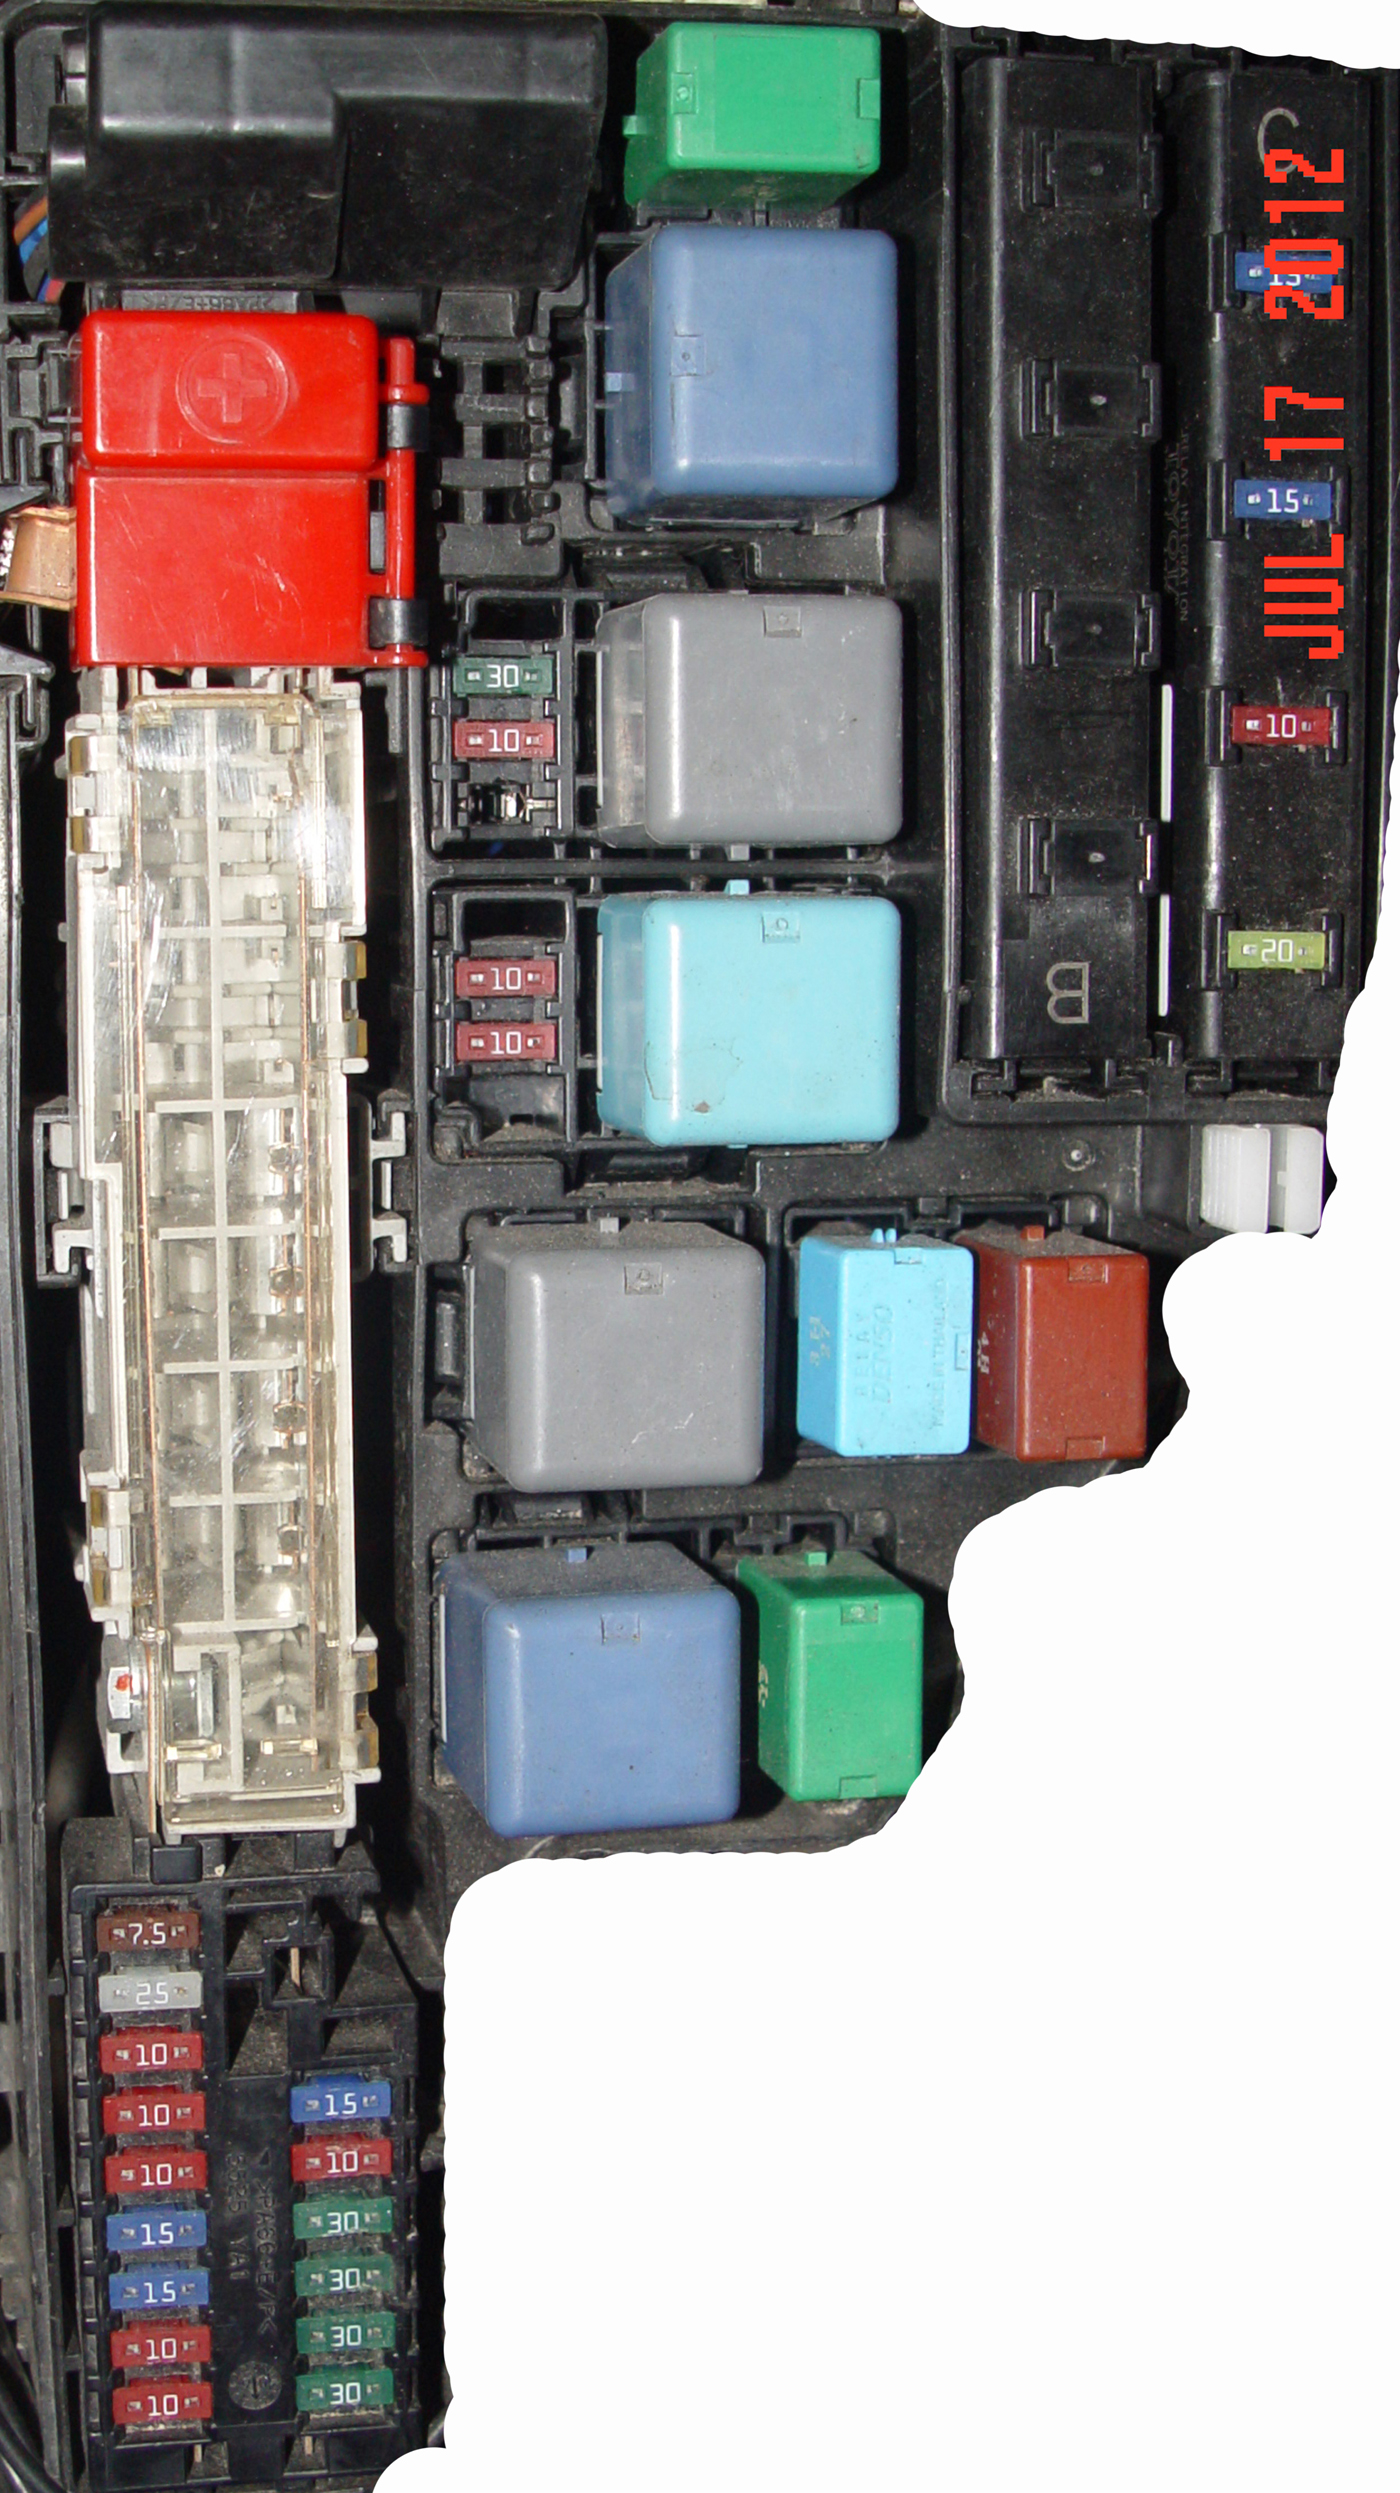 2004 toyota prius fuse box diagram iirGtIL 2004 toyota prius fuse box diagram image details 2002 prius fuse box diagram at couponss.co